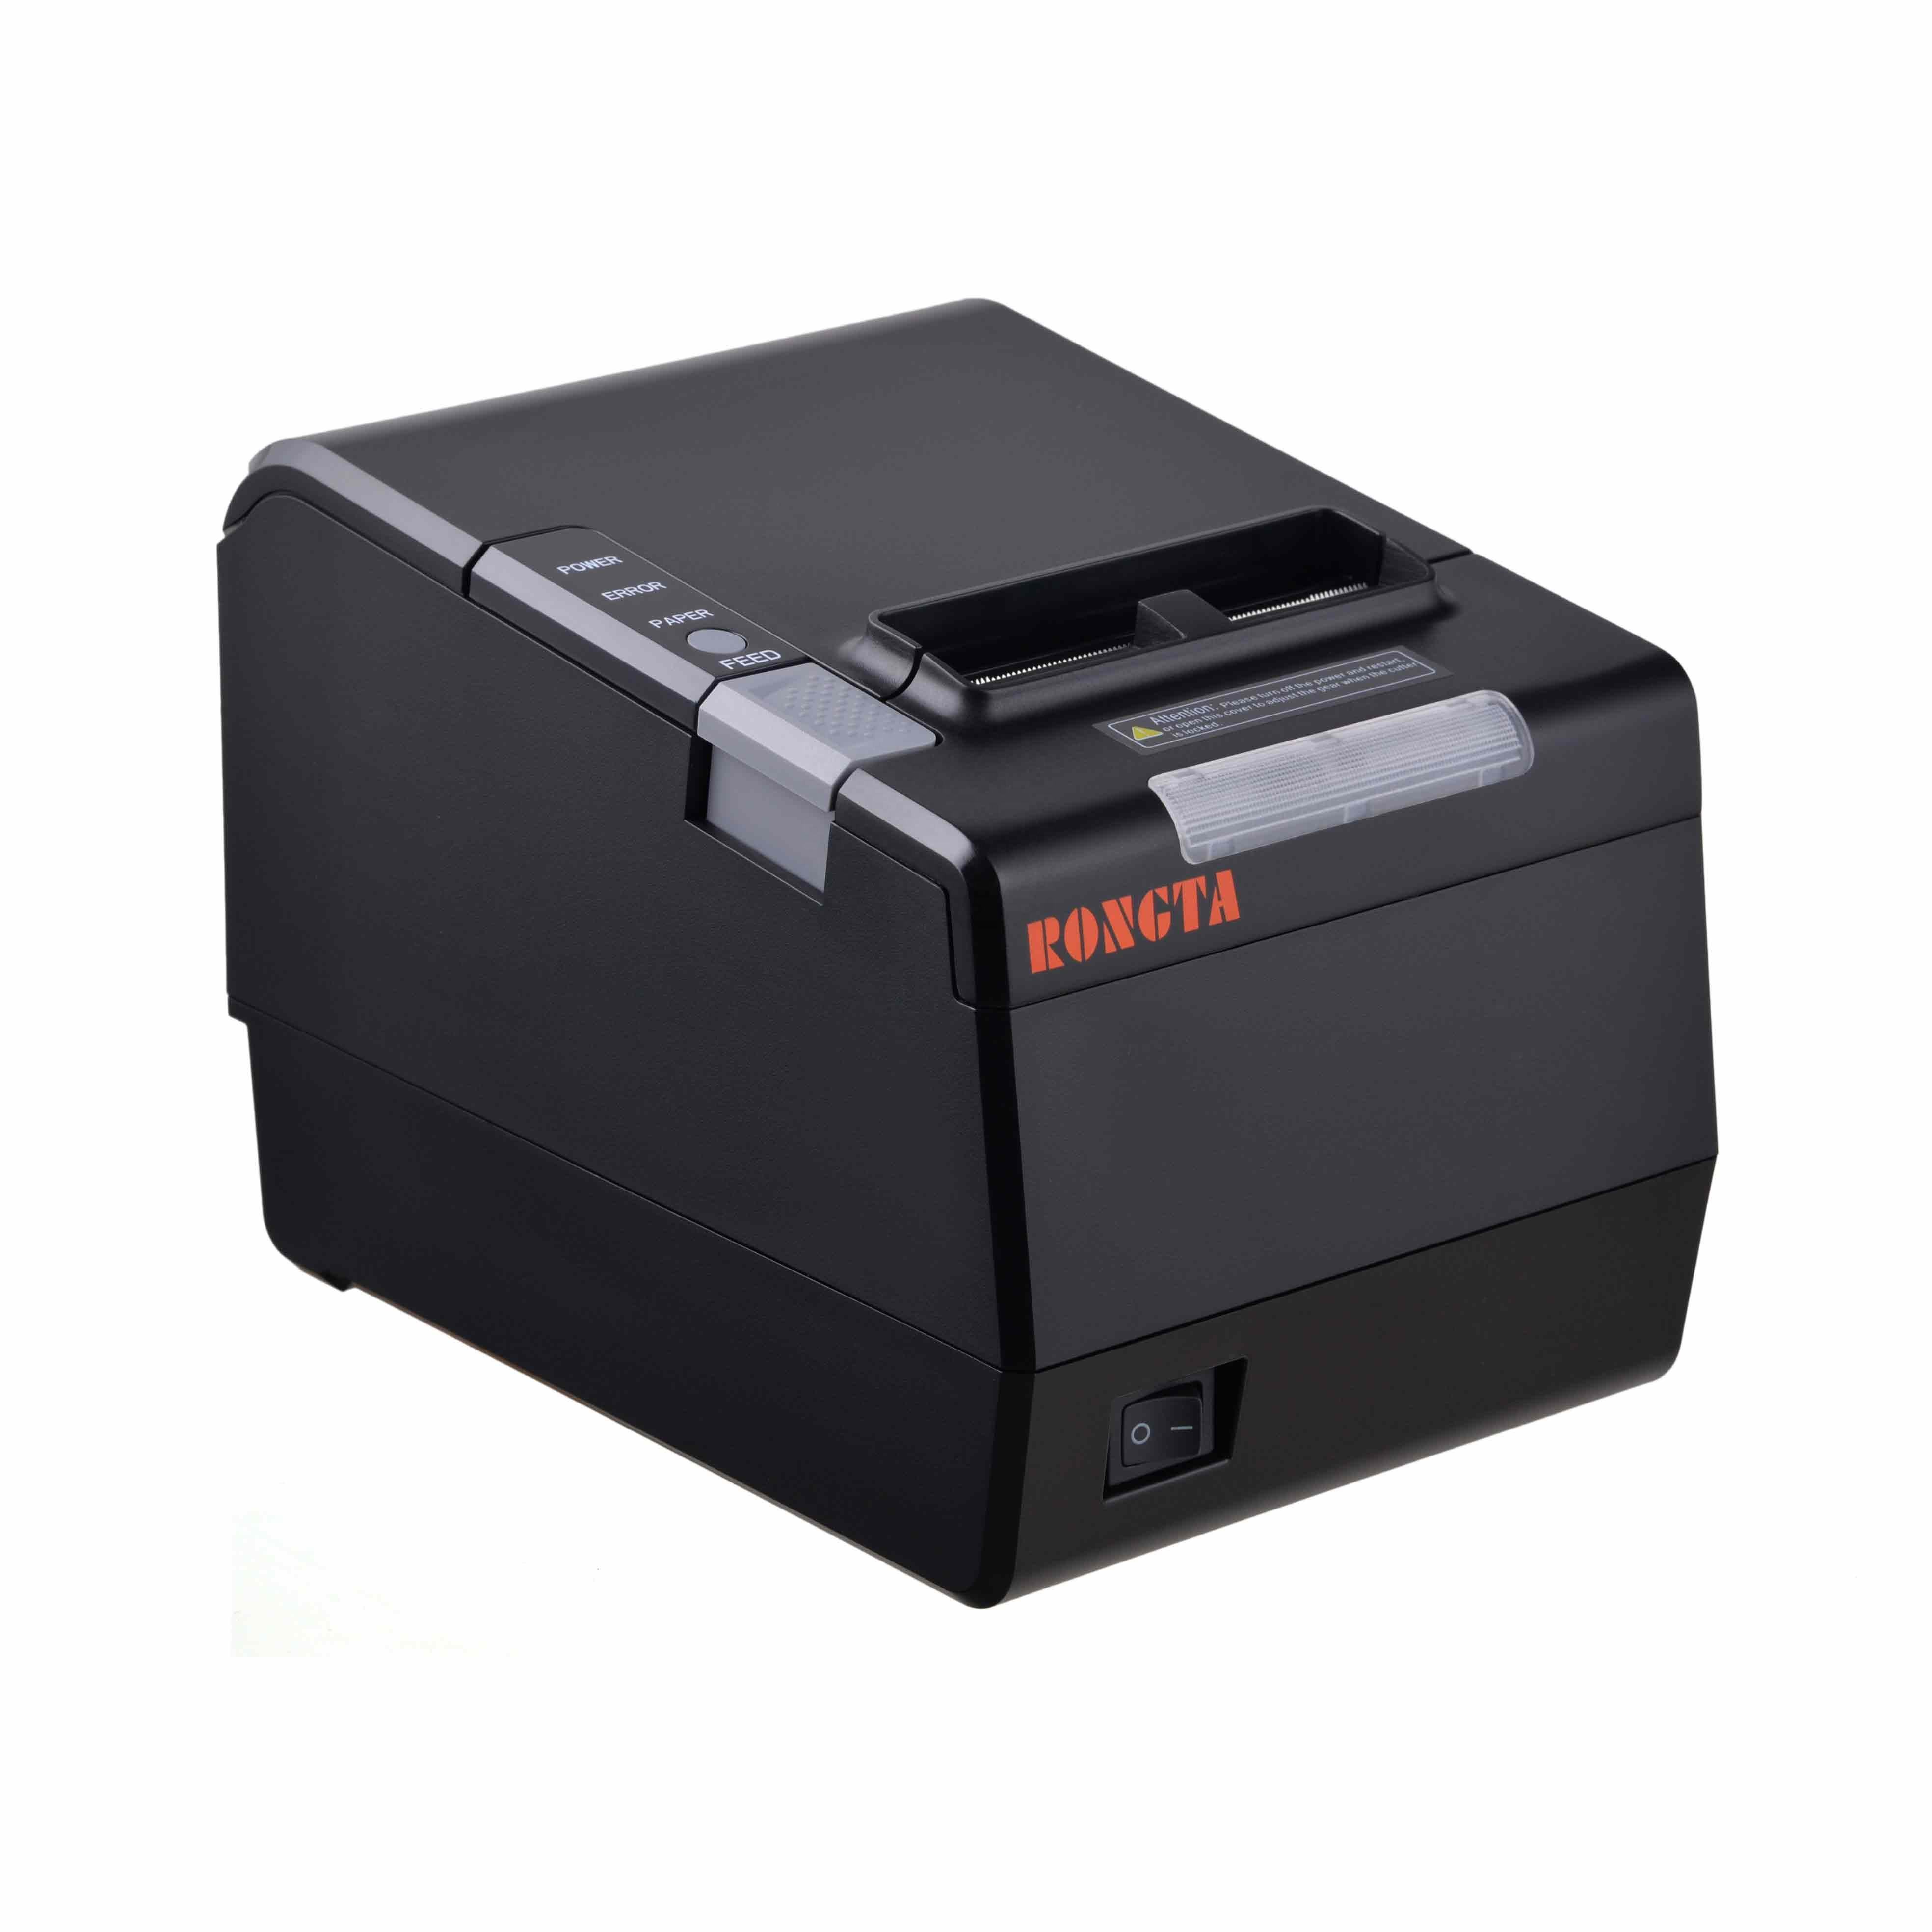 RP850 Pos Receipt Printer 80 mm Thermal Printer Auto Cutter pos system 3 inch printer payment solution